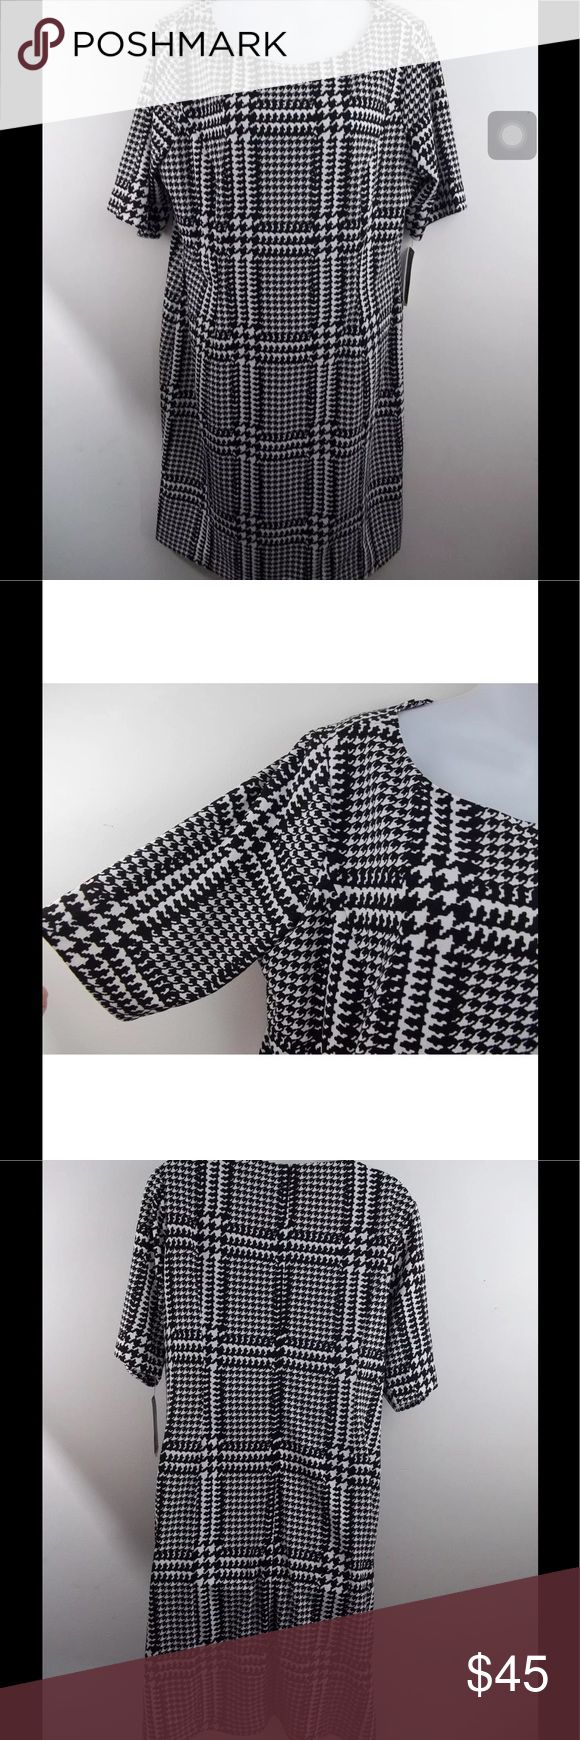 """Alfani Women's Sheath Dress Houndstooth Black NWT Alfani Women's Sheath Dress Black White Macro Houndstooth Print Size 16 NWT   Size: 16 Brand: Alfani Color: Black & White Style: Sheath dress Sleeves: Short Material: 95% Polyester 5% Spandex Condition: New with tags, retails $89.50 Country of Manufacture: Vietnam Features: Zip back closure. Stretch material that is macro houndstooth print.  Measurements Length: 37"""" Underarm to underarm (laying flat): 21 1/2"""" Sleeves: 12"""" Alfani Dresses Midi"""